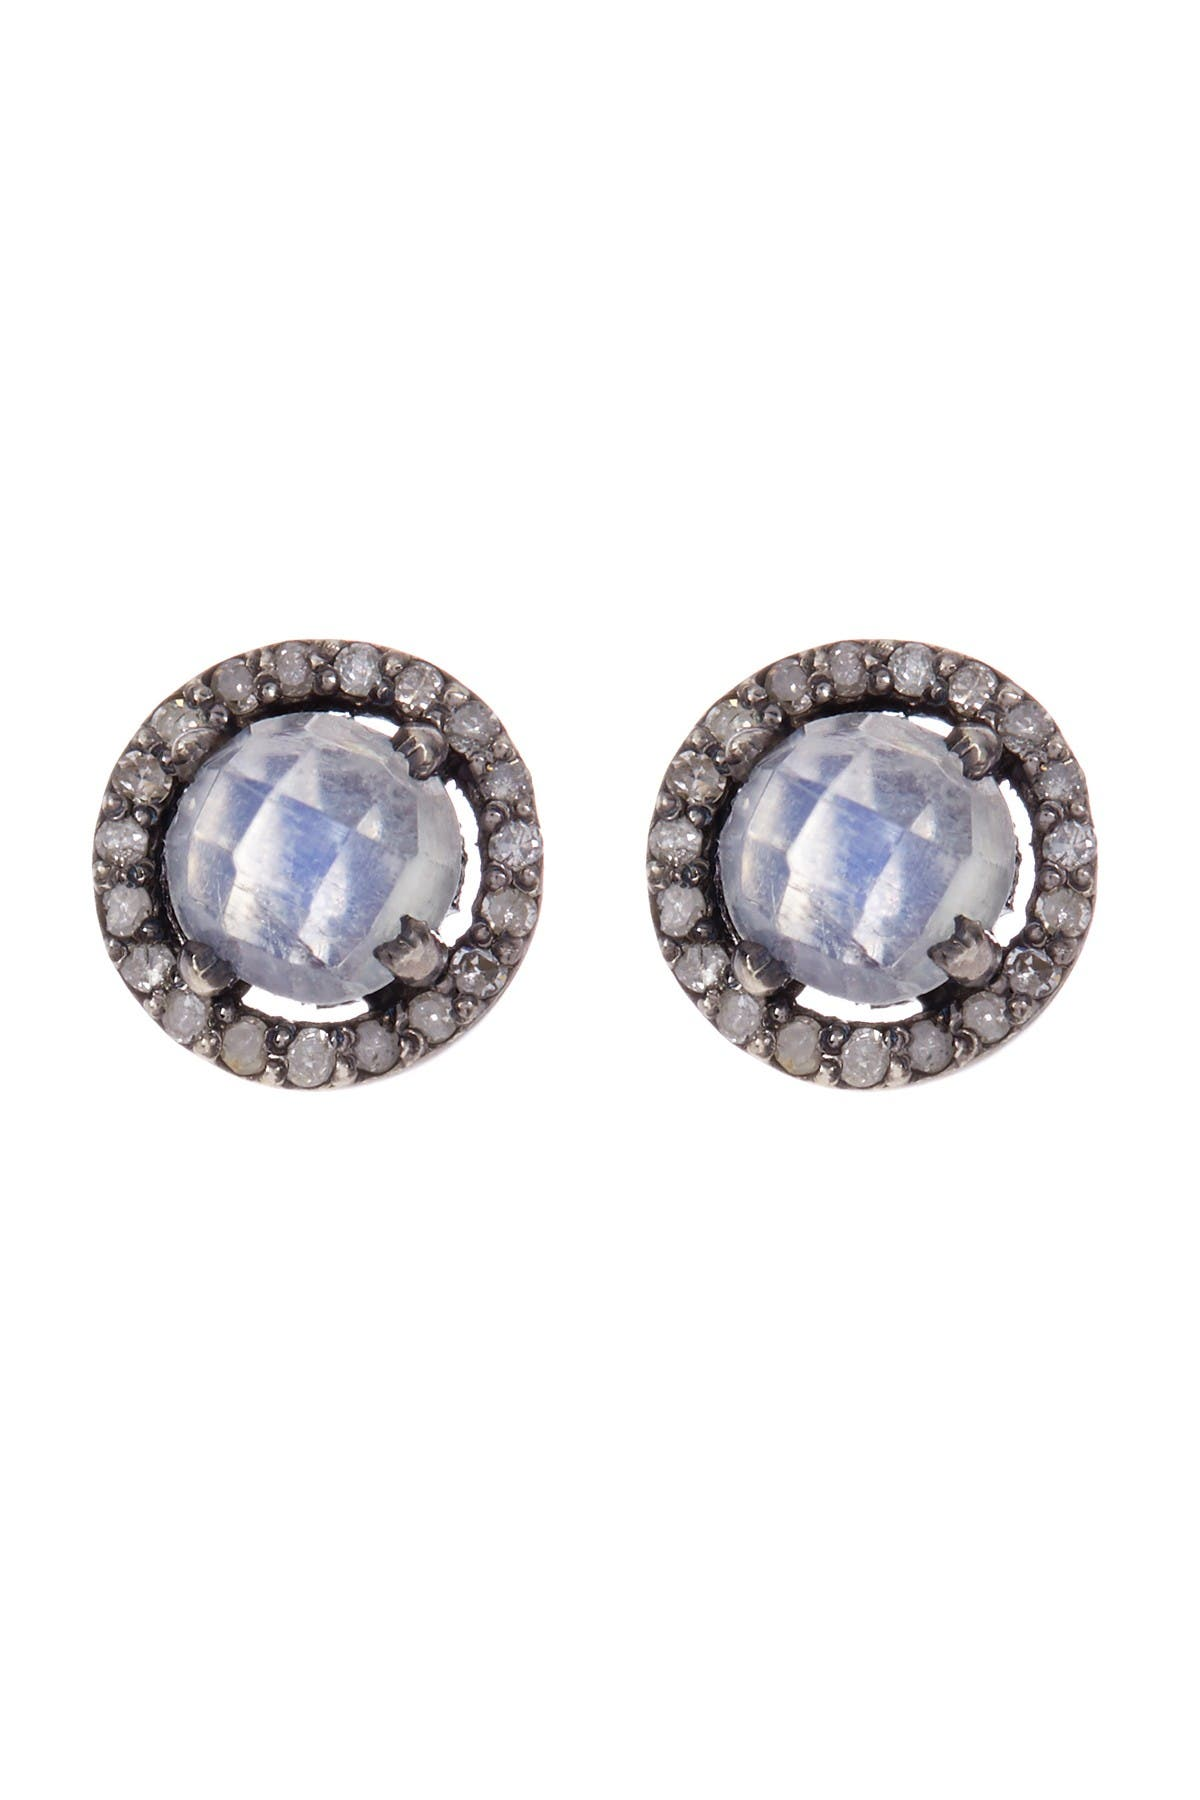 Image of ADORNIA Sterling Silver Echo Moonstone & Champagne Diamond Halo Stud Earrings